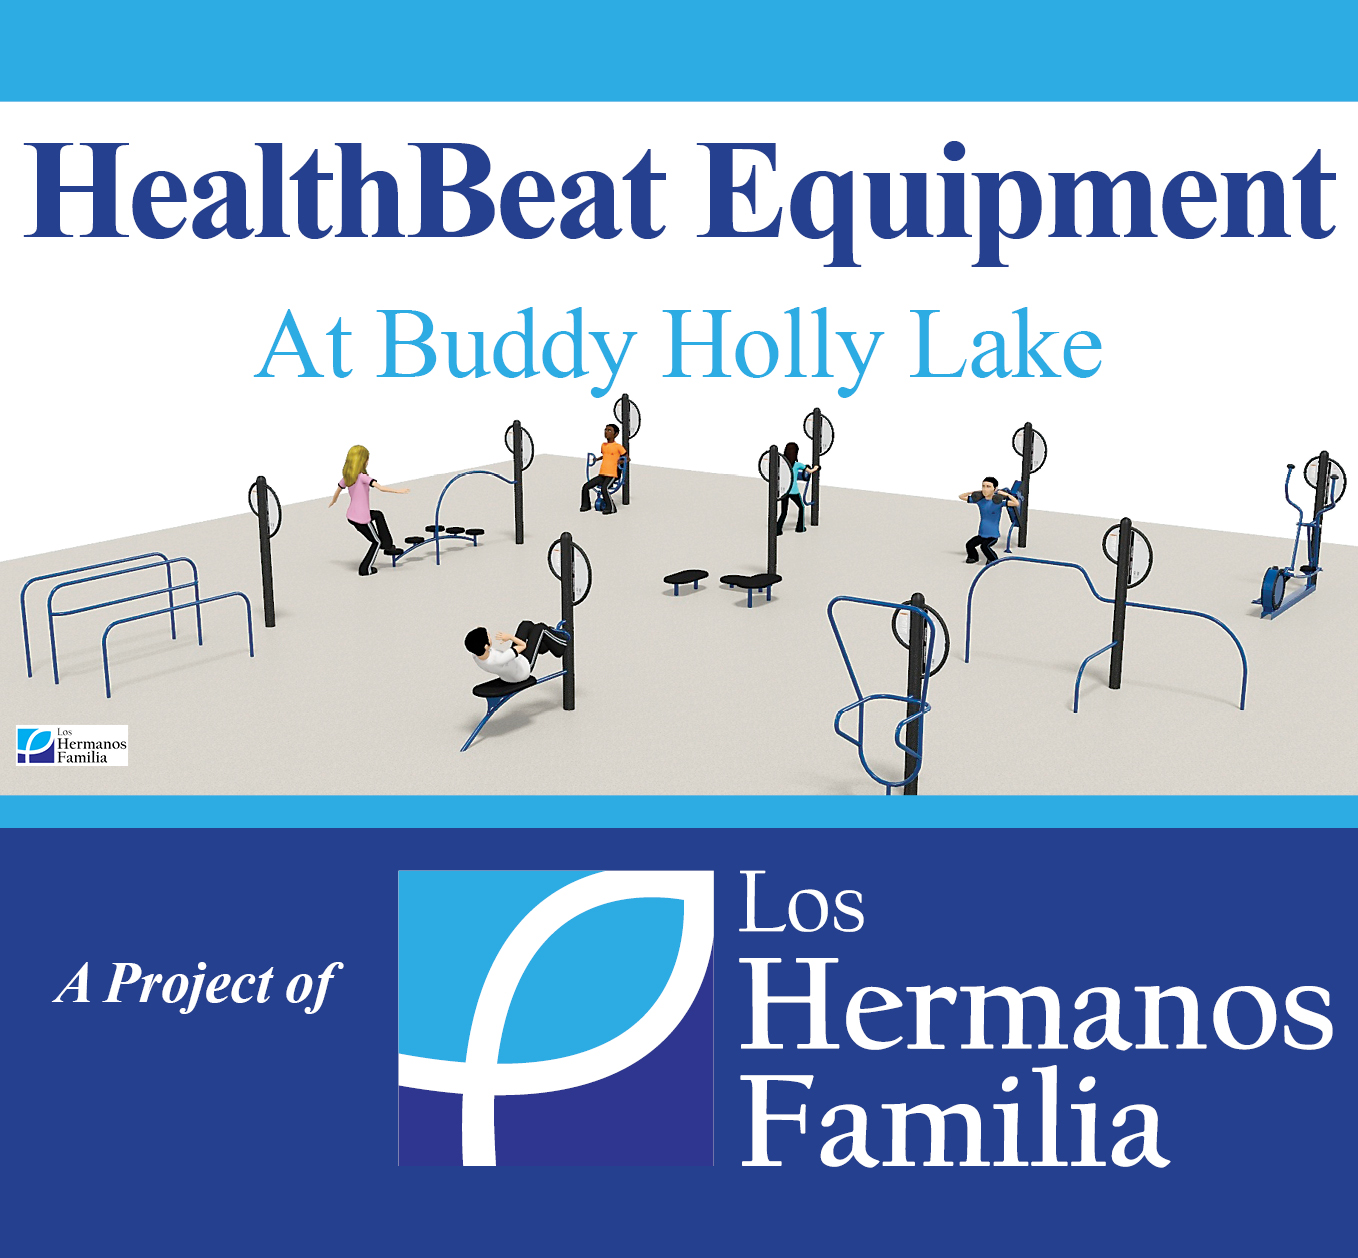 HealthBeat Equipment at Buddy Holly Lake Sponsored by Los Hermanos Familia